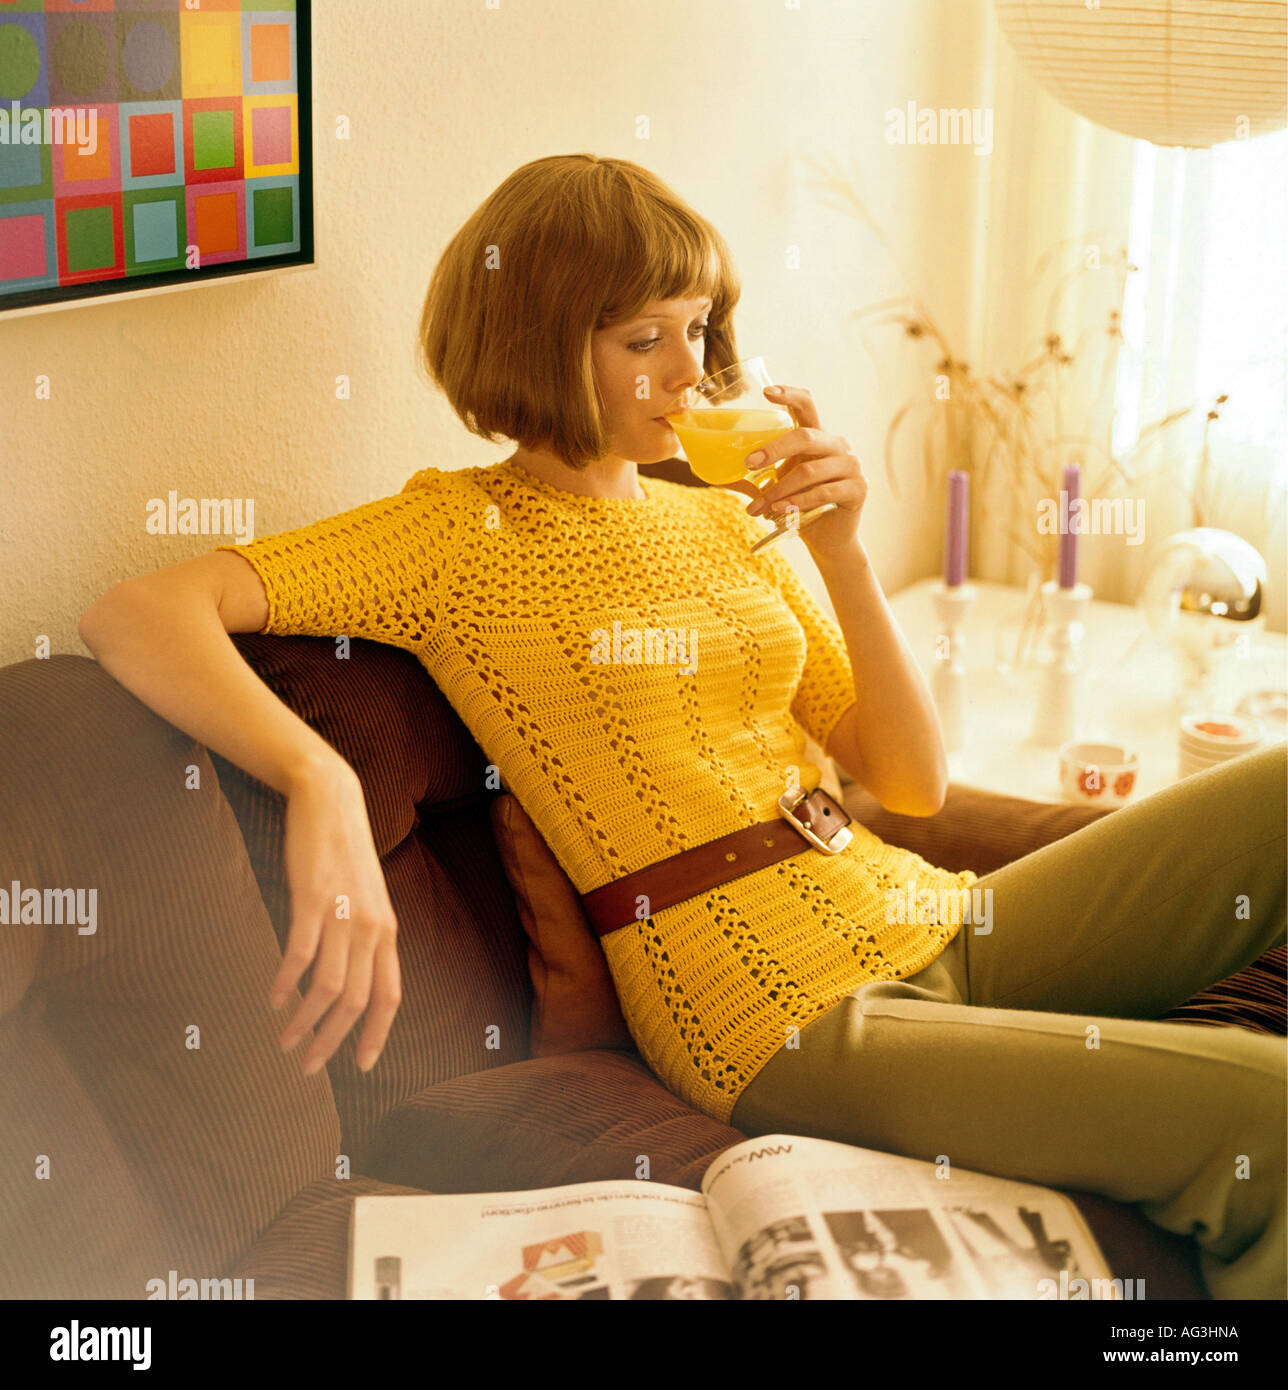 People, Women, 1960s, Woman Sitting On A Cord Sofa And Drinking Orange  Juice, Half Length, Fashion, 60s, Historic, Historical, P